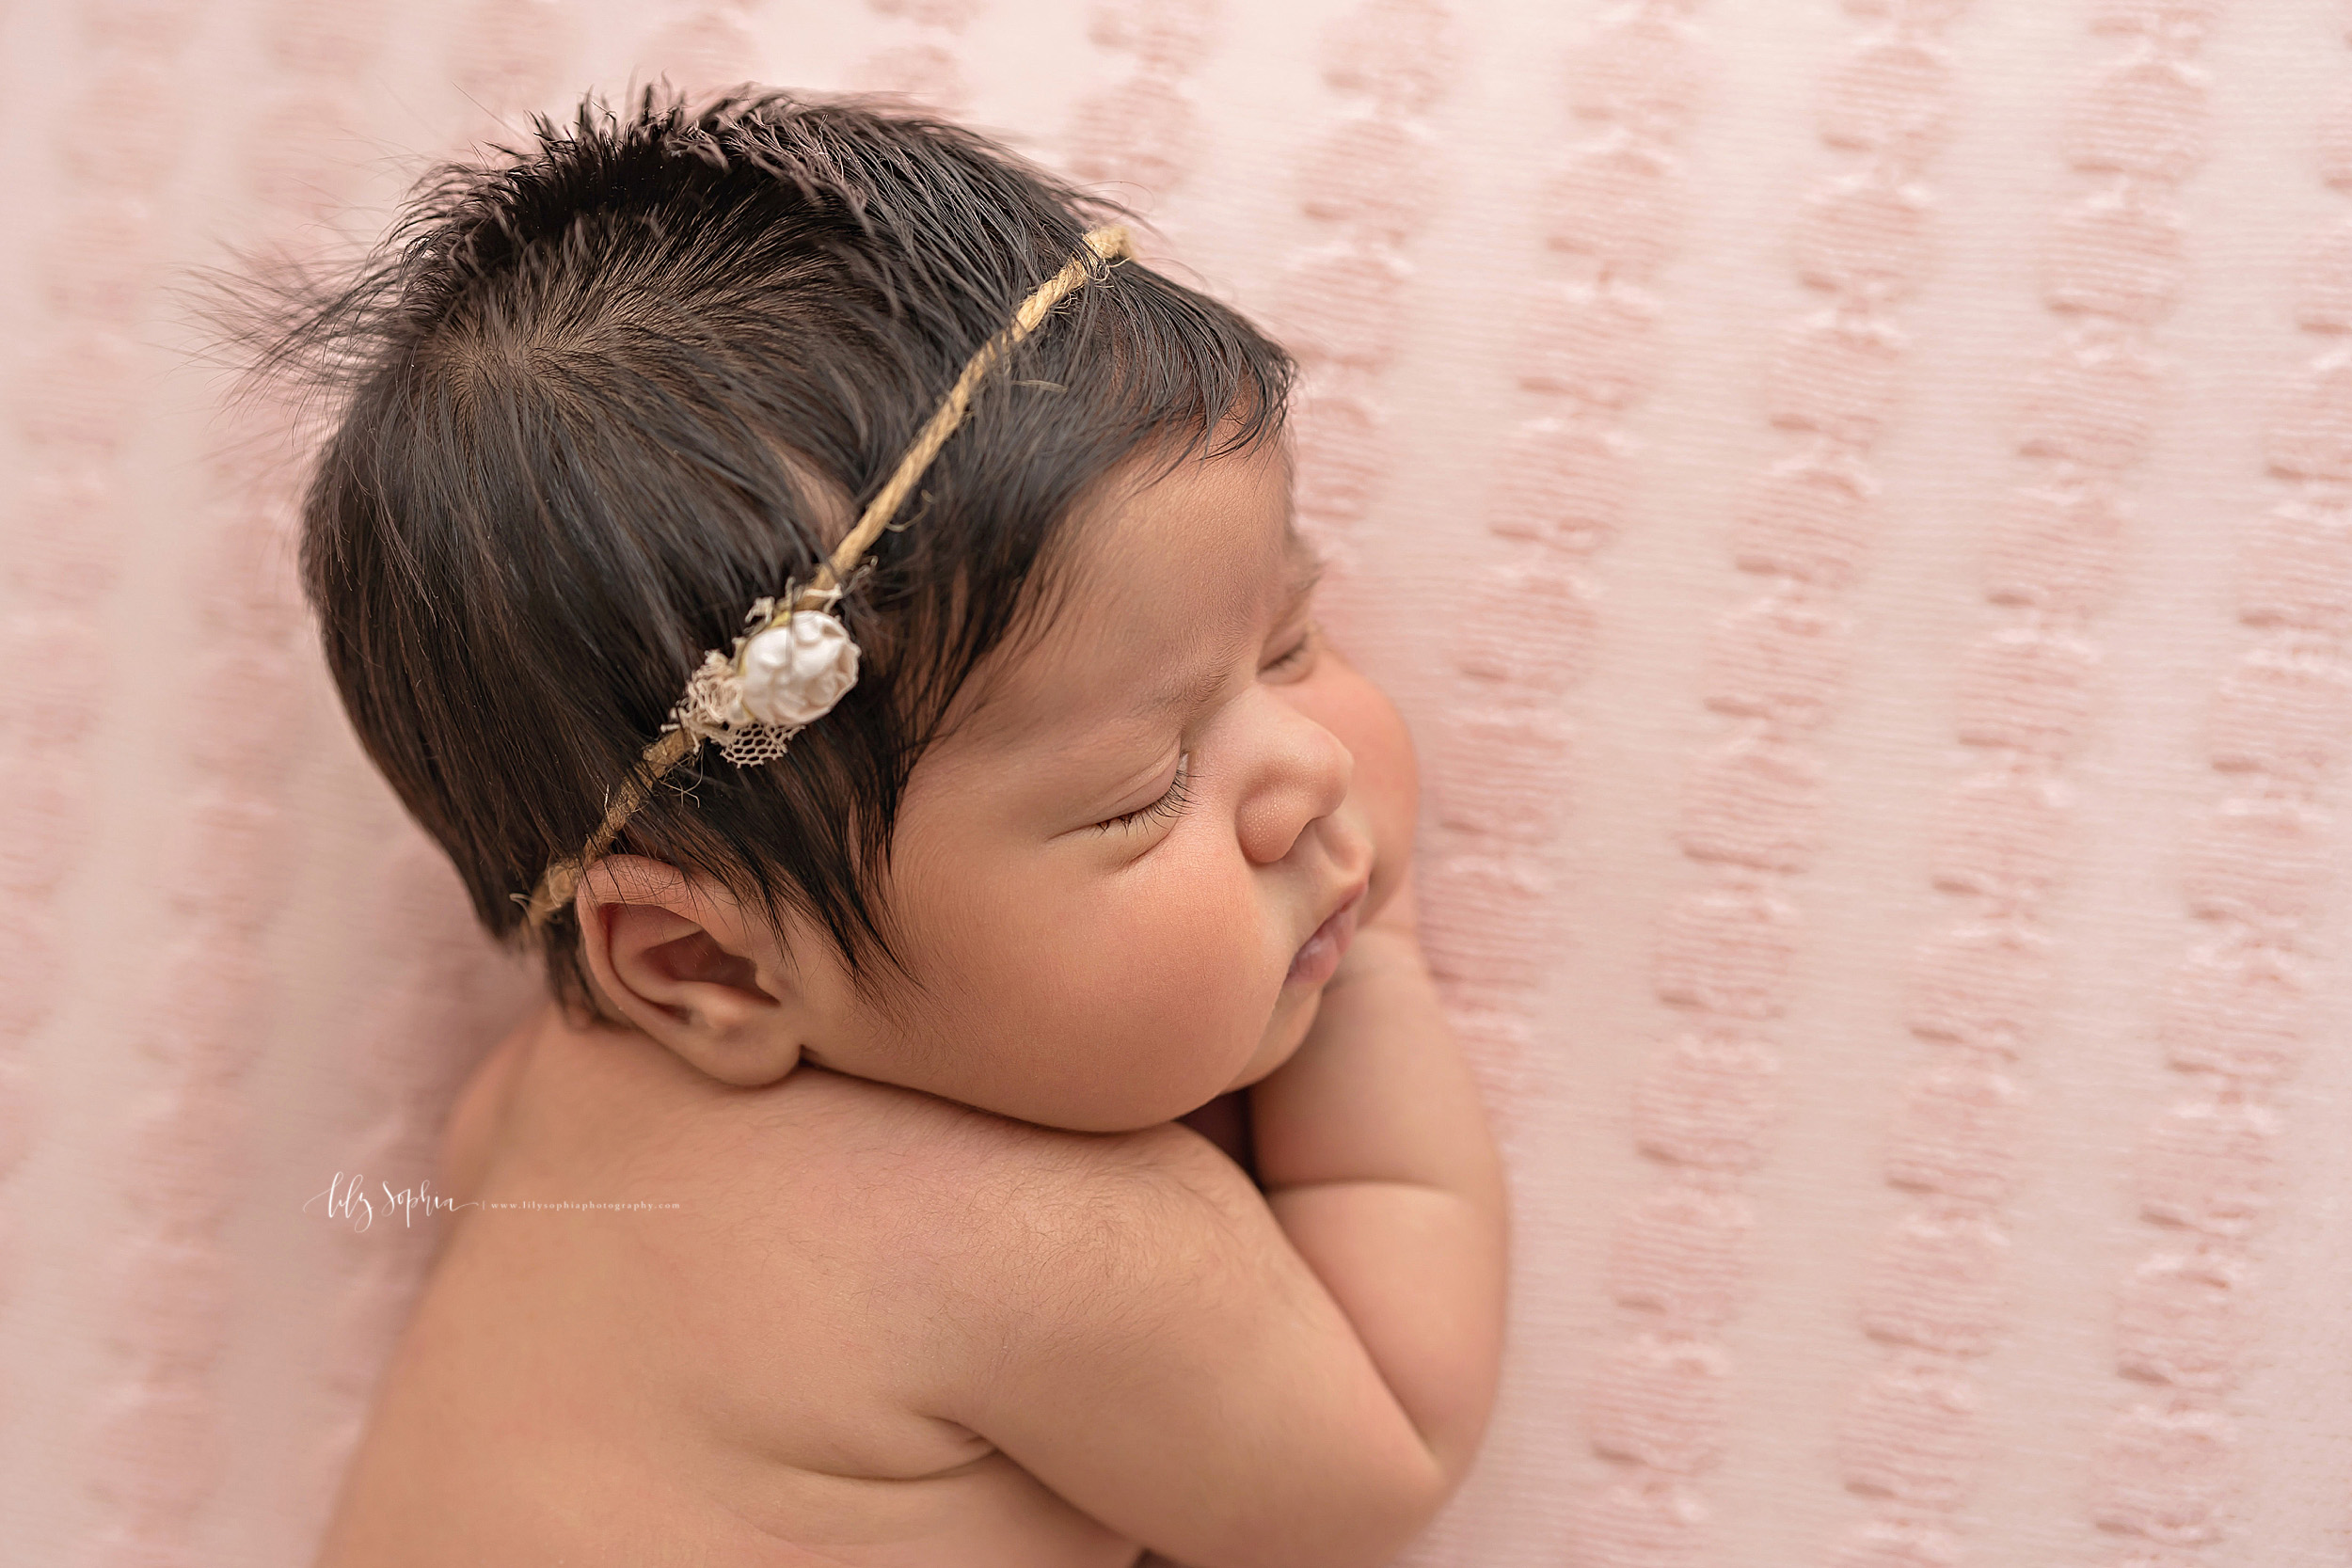 atlanta-smyrna-decatur-sandy-springs-buckhead-virginia-highlands-west-end-decatur-lily-sophia-photography-studio-newborn-baby-girl-toddler-big-brother-family-photos_1323.jpg